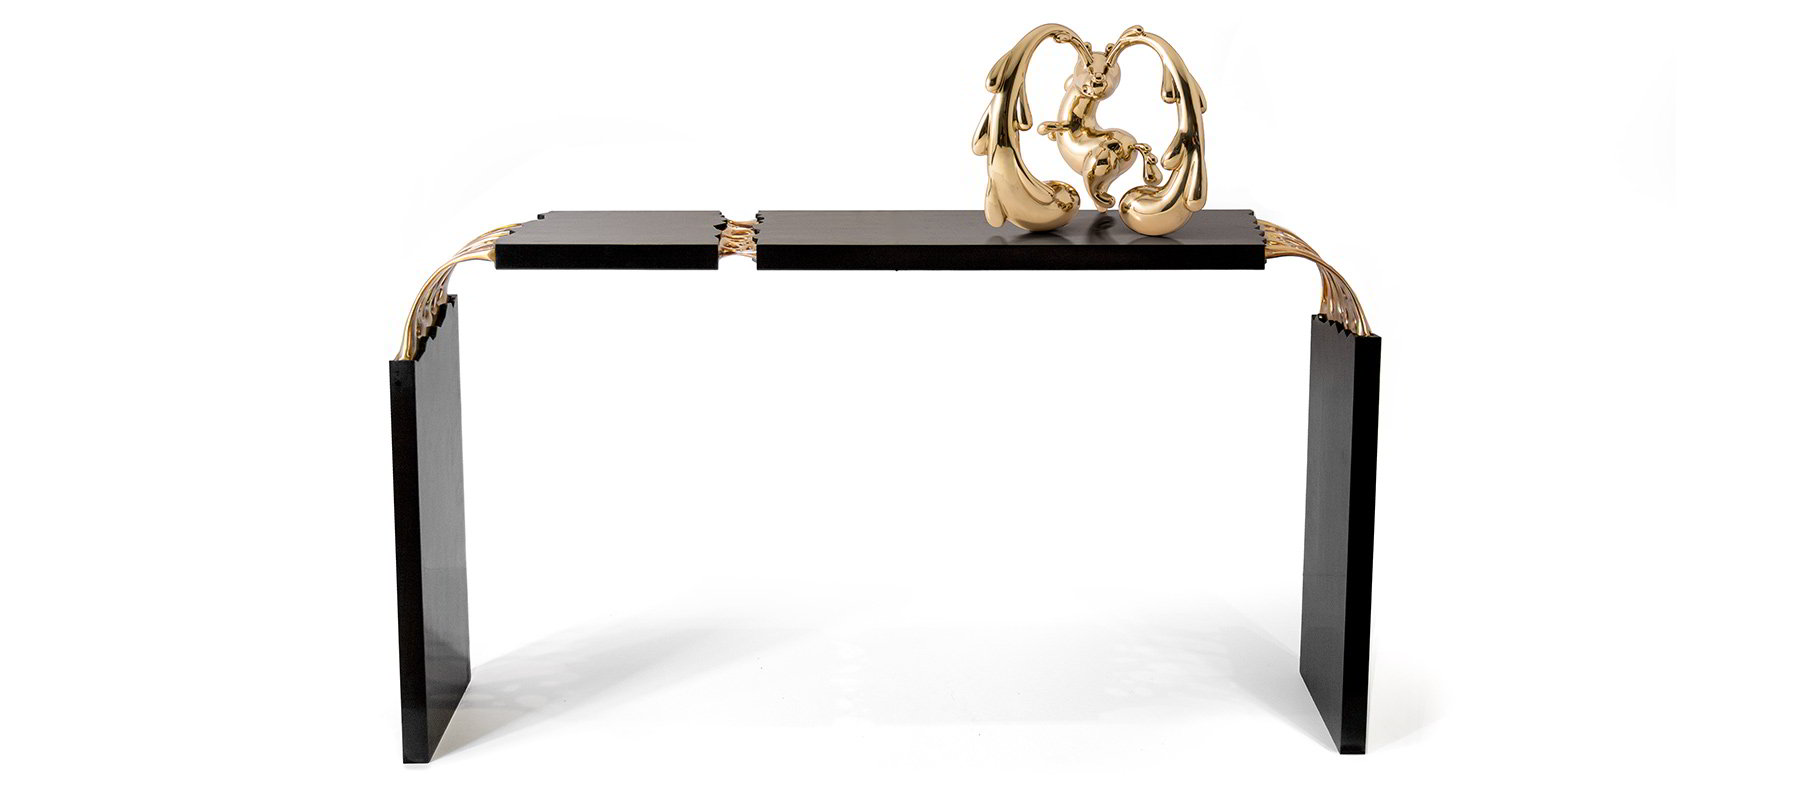 Broken Monolith table with unicorn bronze sculpture and wood sculpture